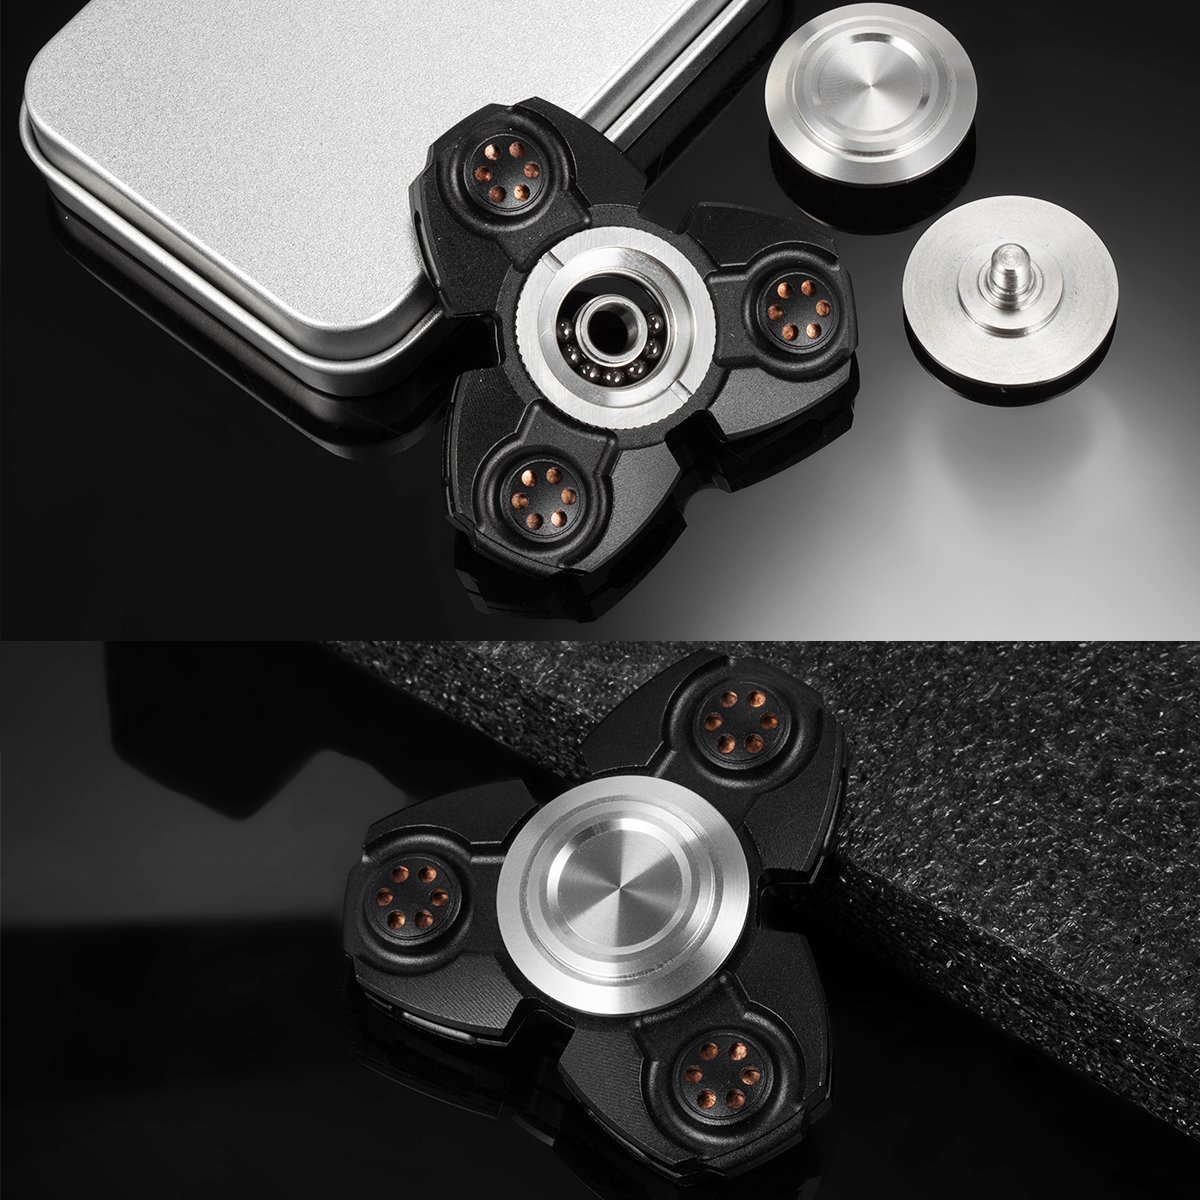 FREELOVE Russia UFO Triangle Design Fidget Spinner Toy Stress Reducer Premium EDC Disassemble Silicon Nitride Ceramic Bearing Helps Focus, Stress, Anxiety, ADHD (Aluminum Alloy Black, Aluminum Alloy) by FREELOVE (Image #5)